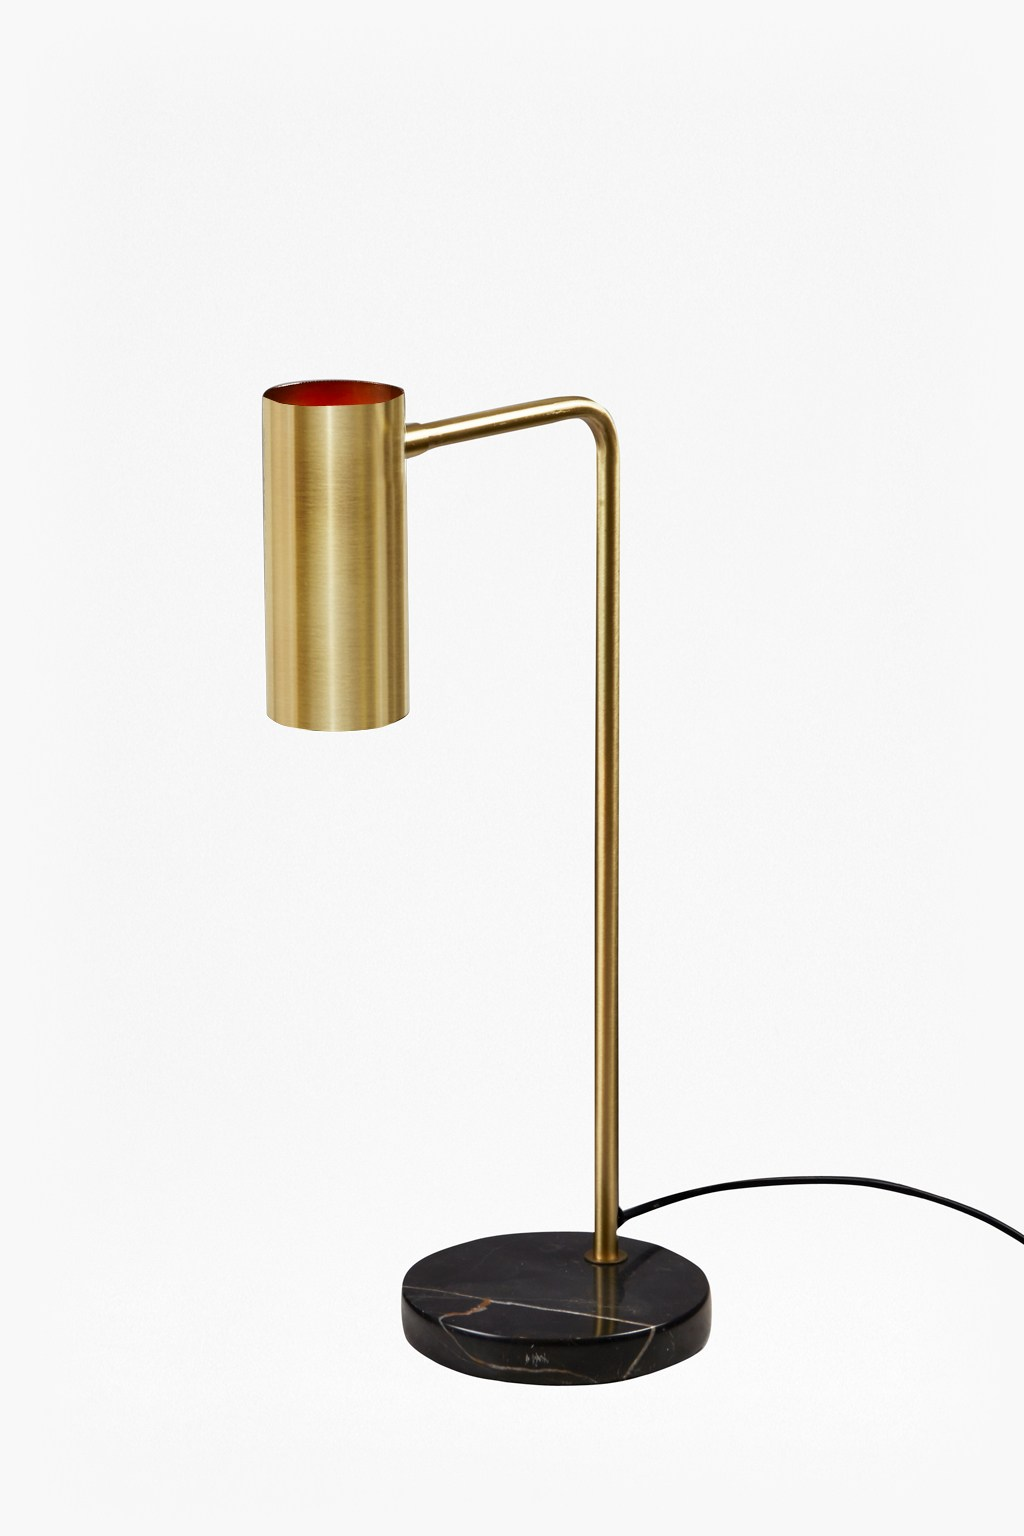 Retro brass table lamp collection french connection retro brass table lamp loading images aloadofball Choice Image